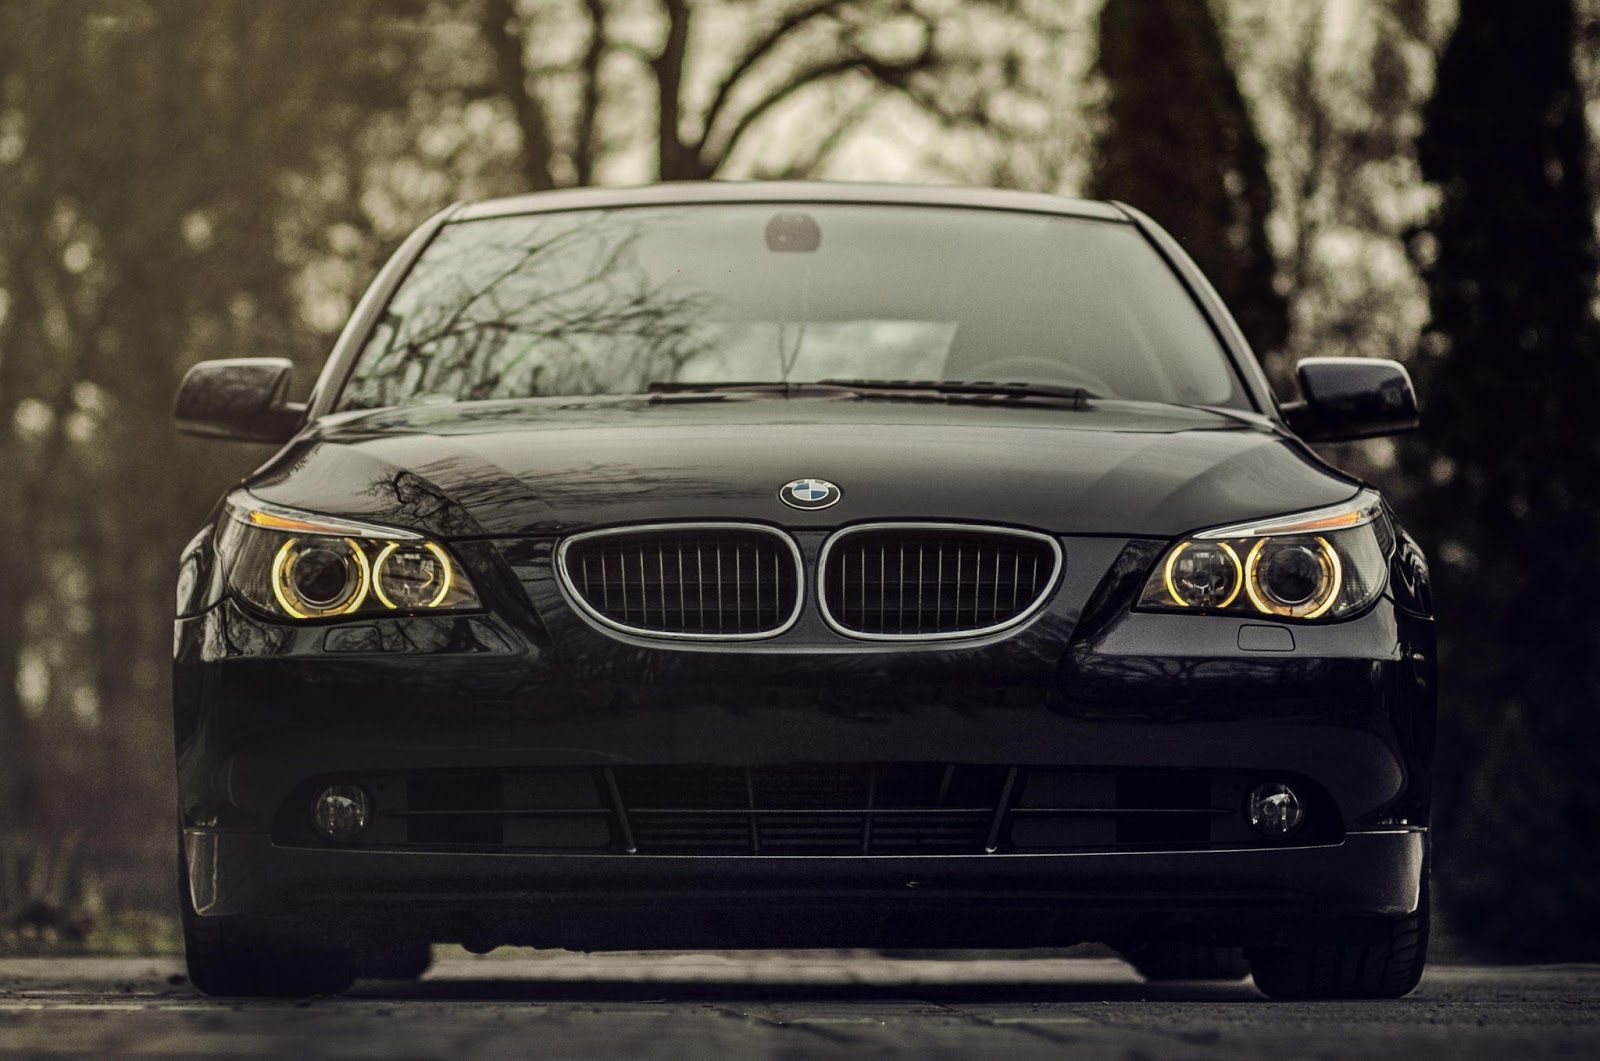 Bmw 520d Black Front View Front Bumper Full Hd 1080p Cars